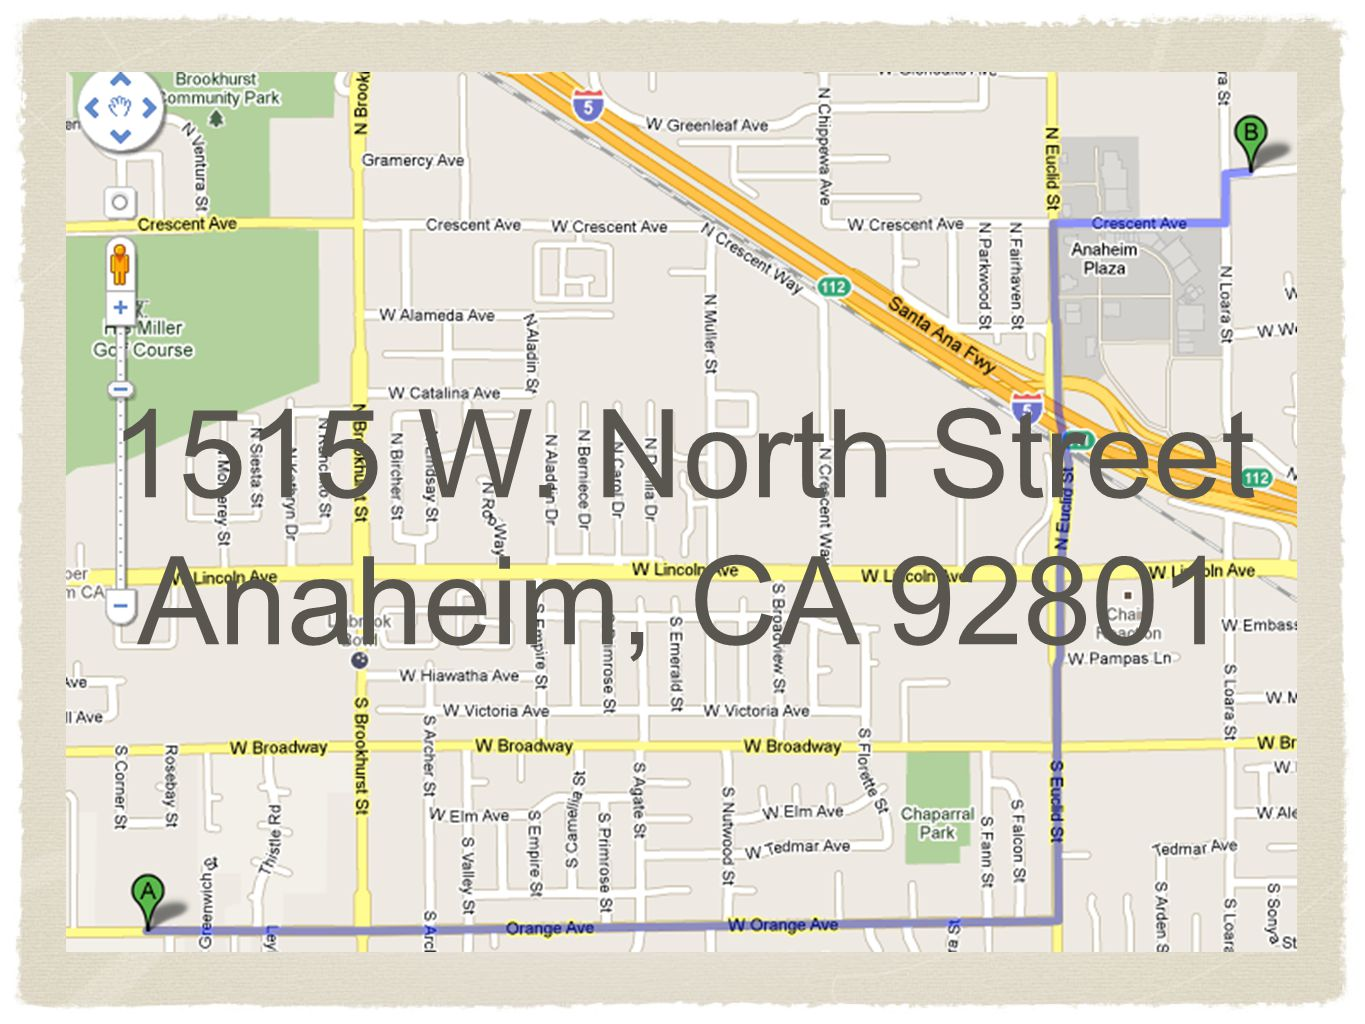 1515 W. North Street Anaheim, CA 92801